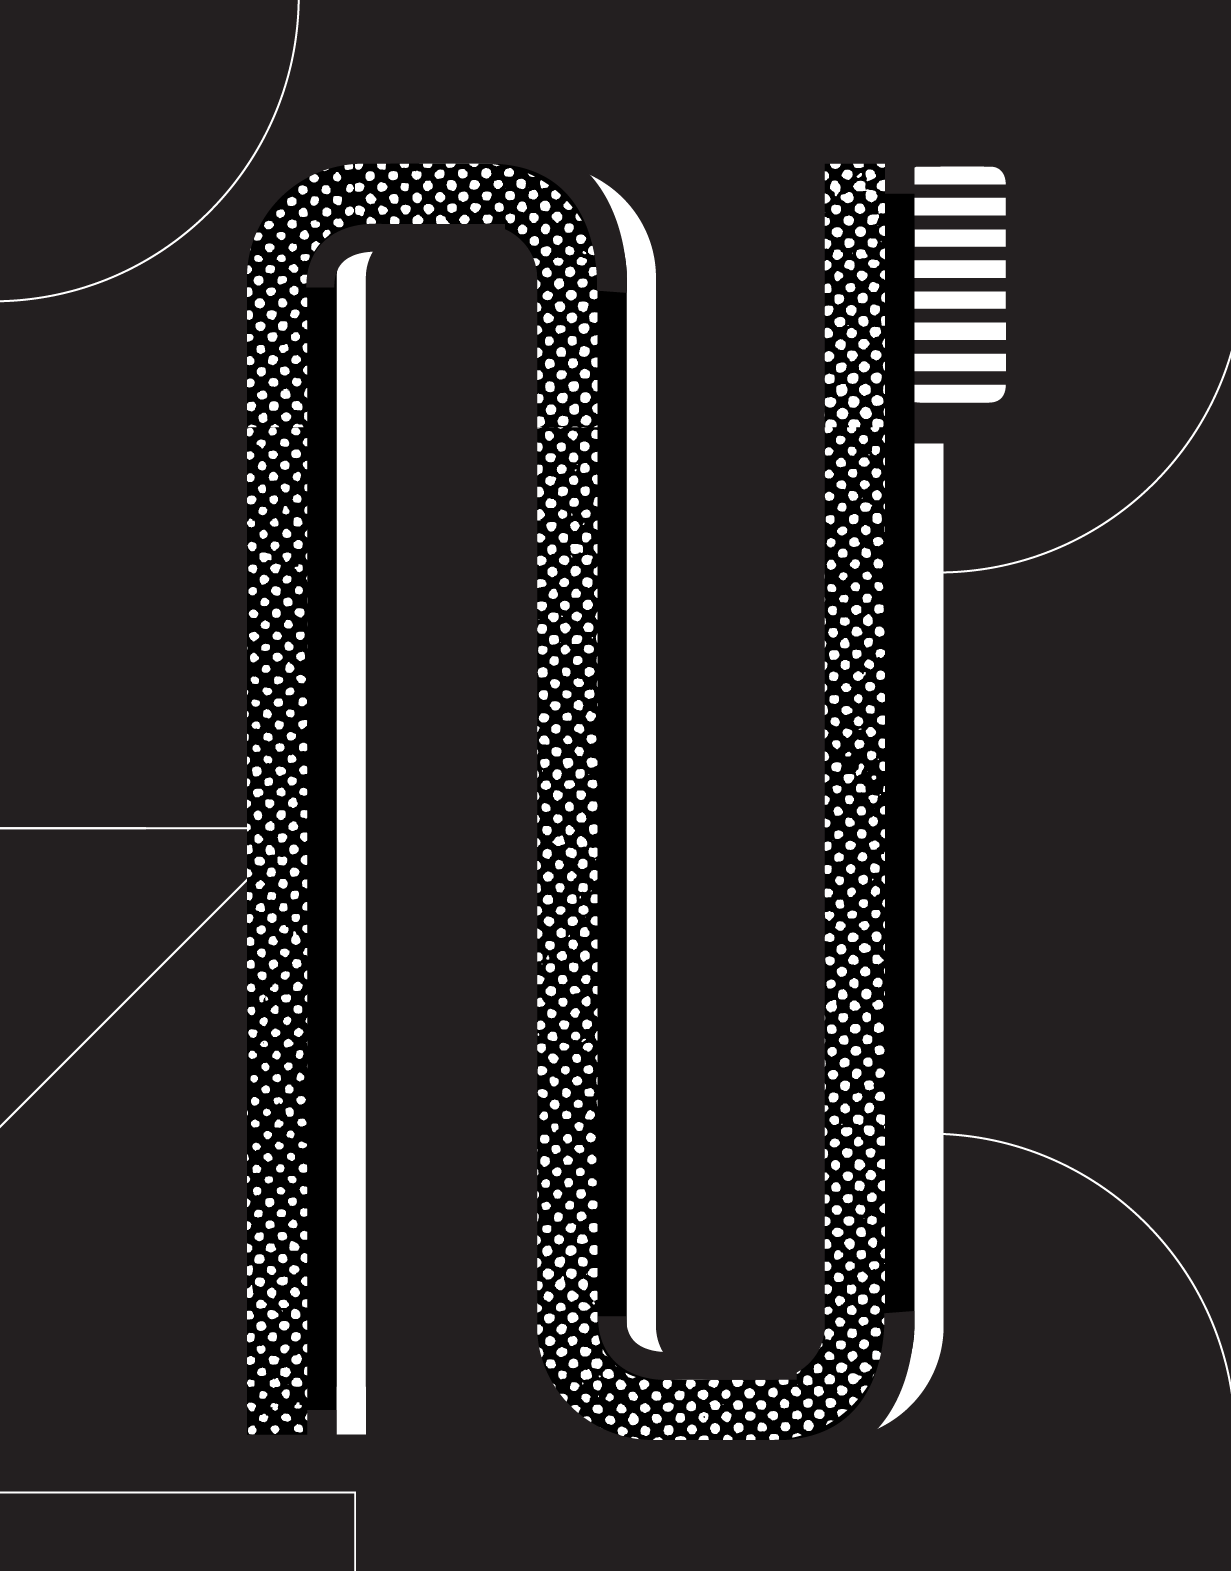 Illustrated toothbrush